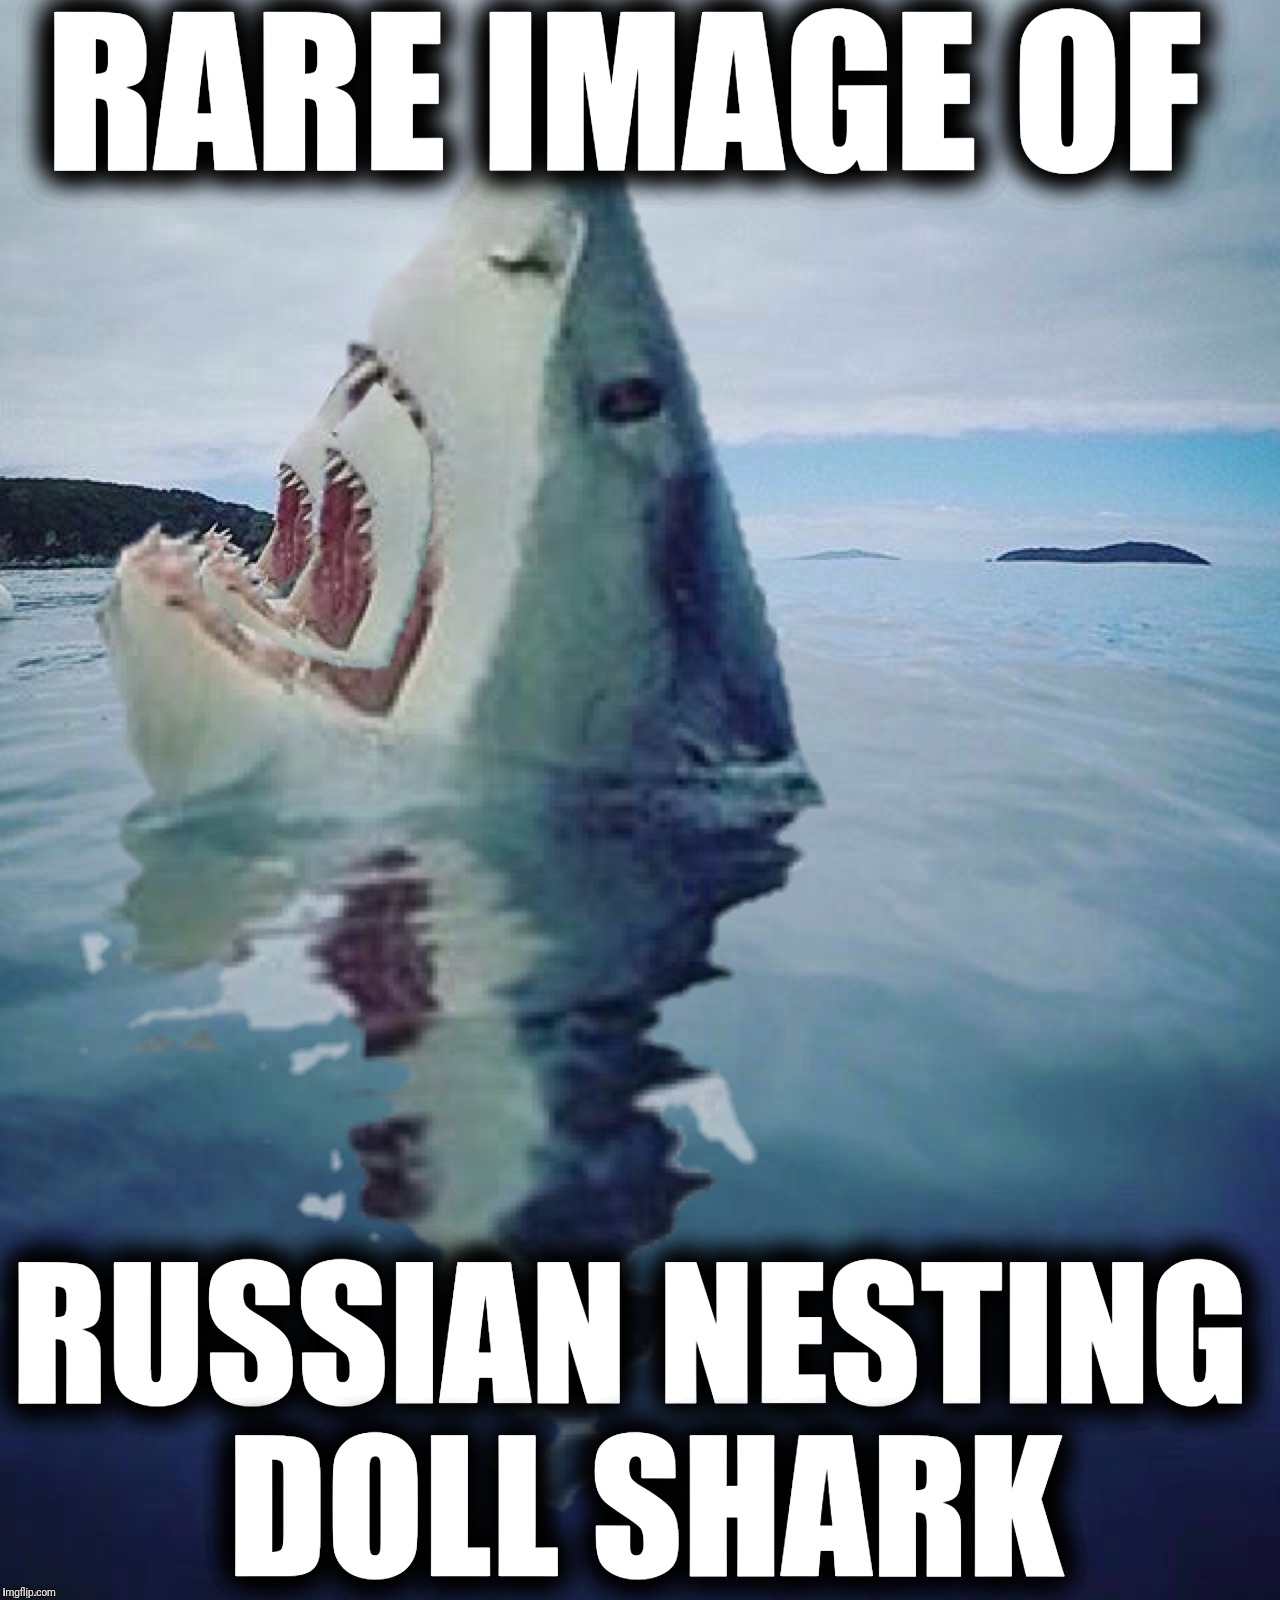 I saw this when I was waterskiing... or memeing... I can't remember | RARE IMAGE OF RUSSIAN NESTING DOLL SHARK | image tagged in memes,rare image,russian nesting doll shark,it came from the comments,memory bank is full,remember that | made w/ Imgflip meme maker